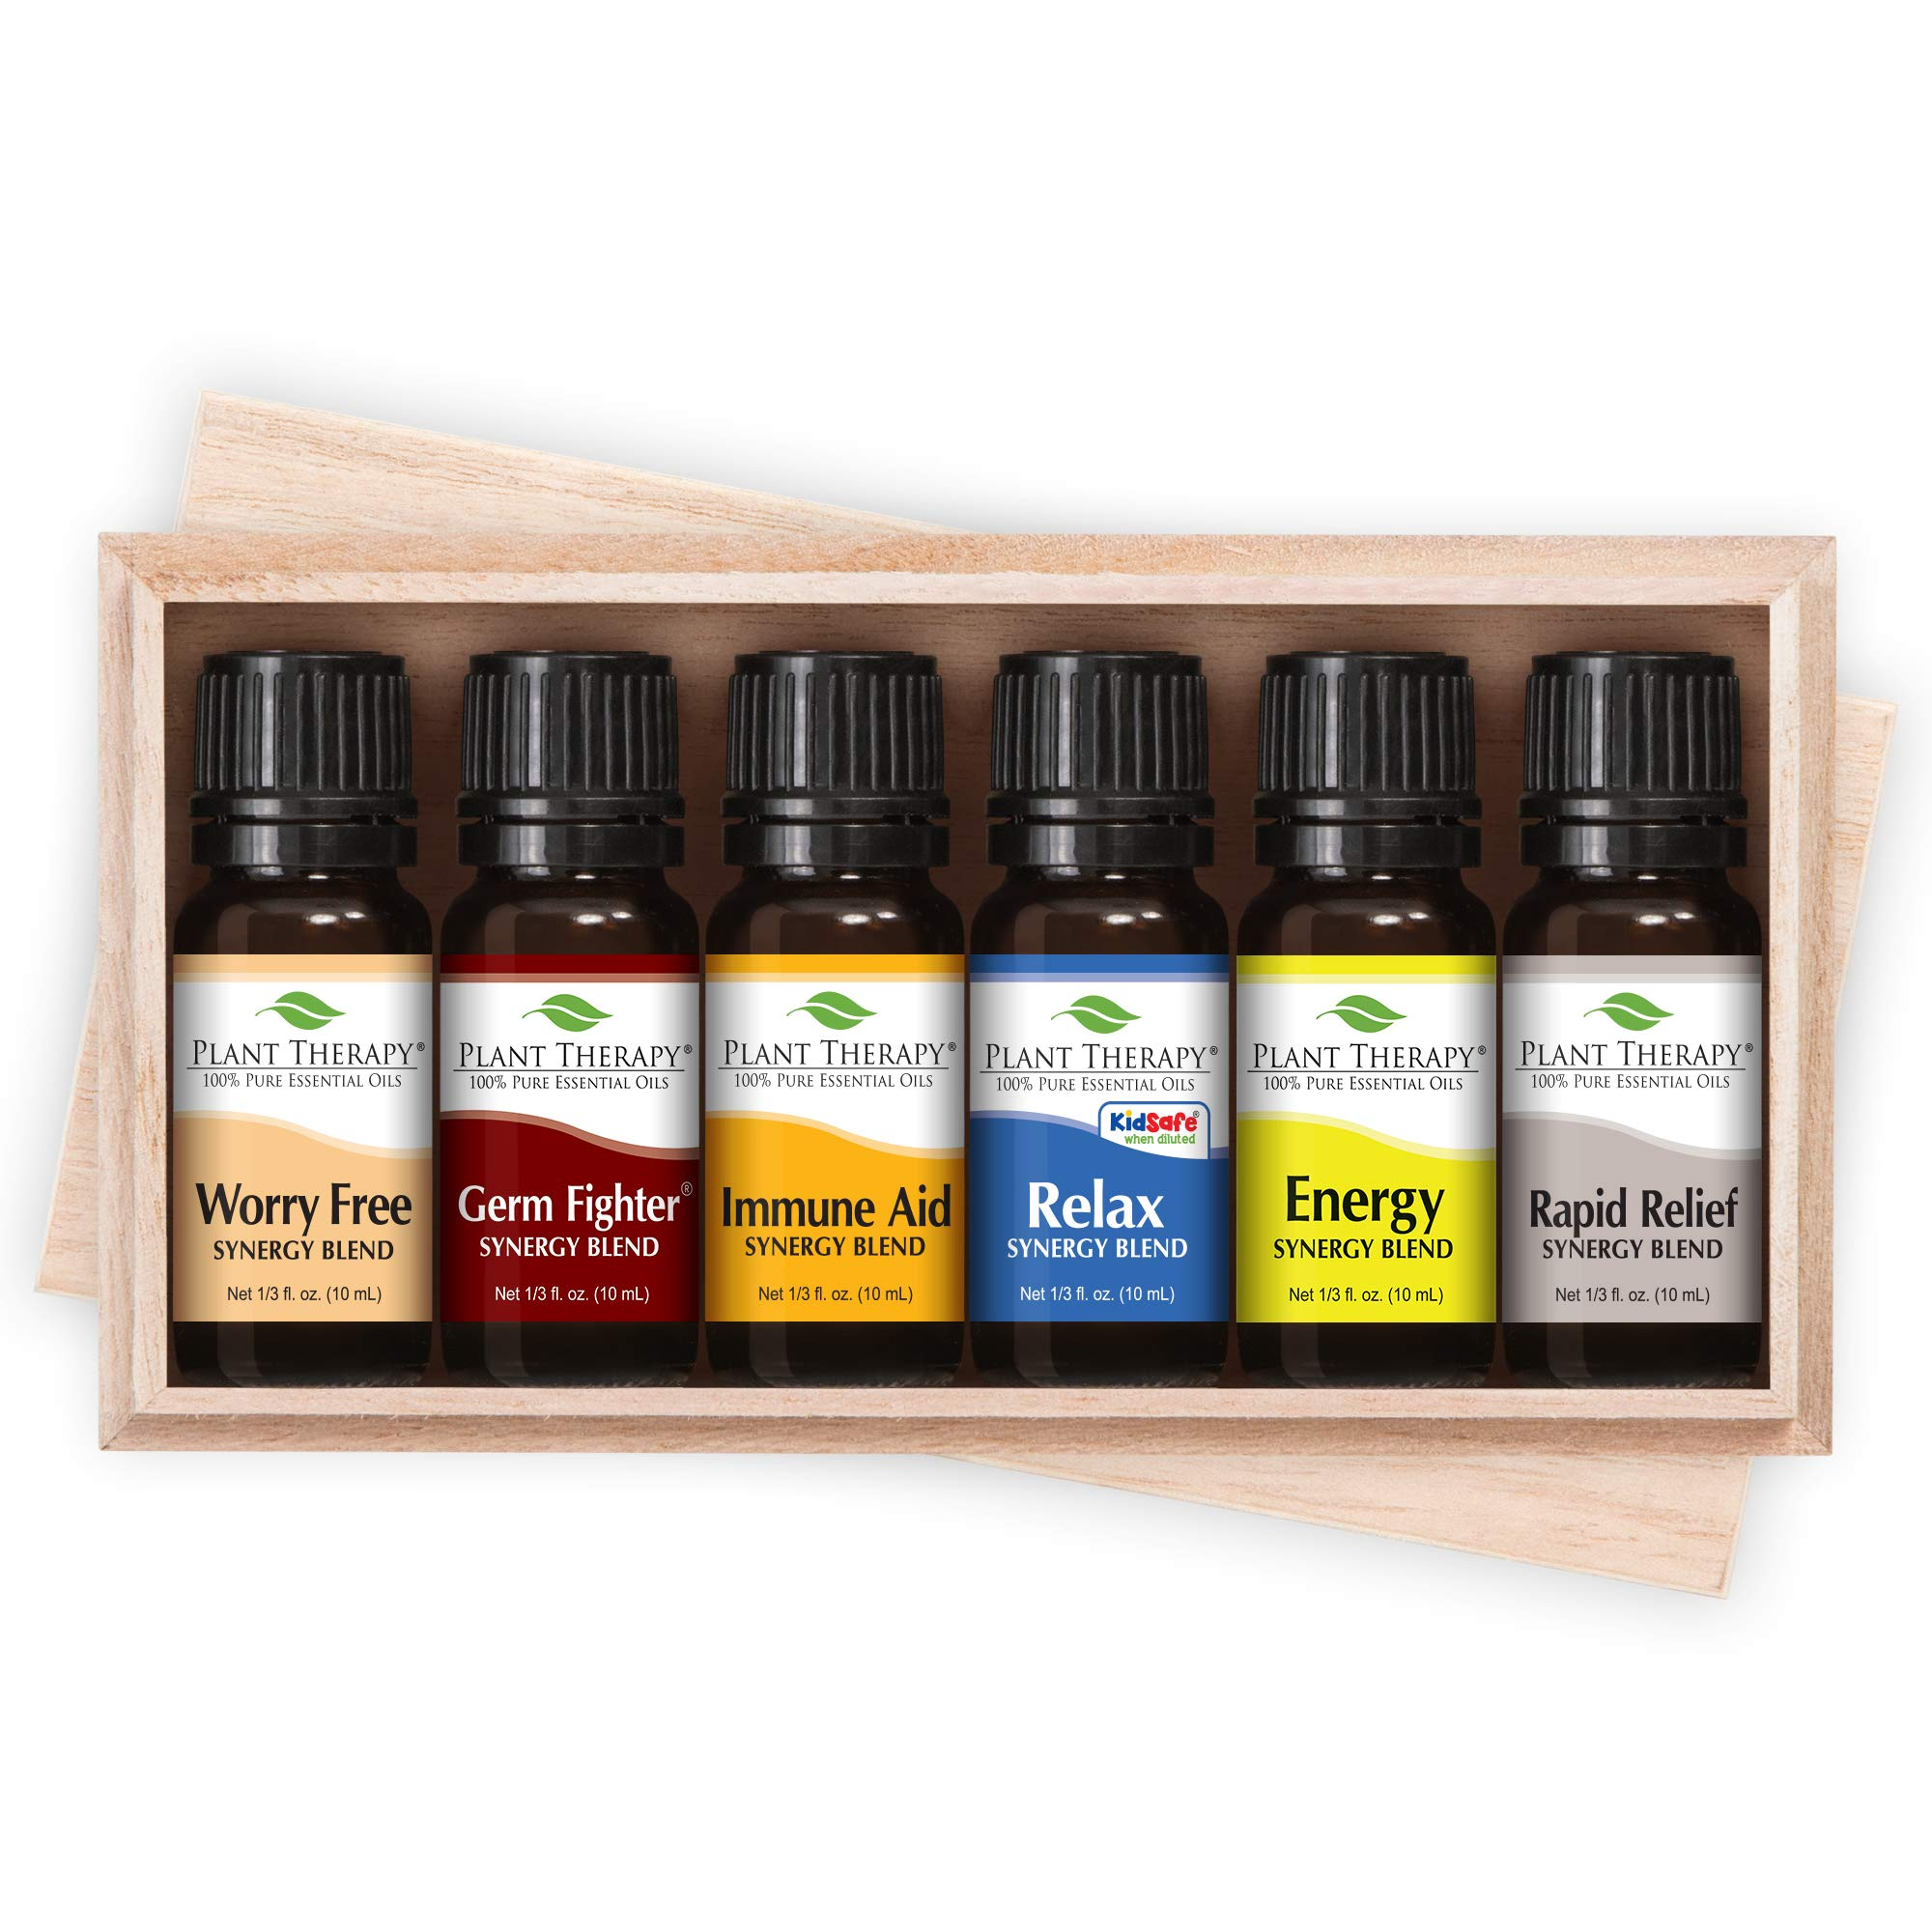 Plant Therapy Top 6 Synergies Set - Essential Oil Blends for Sleep, Stress, Muscle Relief, Energy, Health, in A Wooden Box 100% Pure, Undiluted, Natural Aromatherapy, Therapeutic Grade 10 mL by Plant Therapy